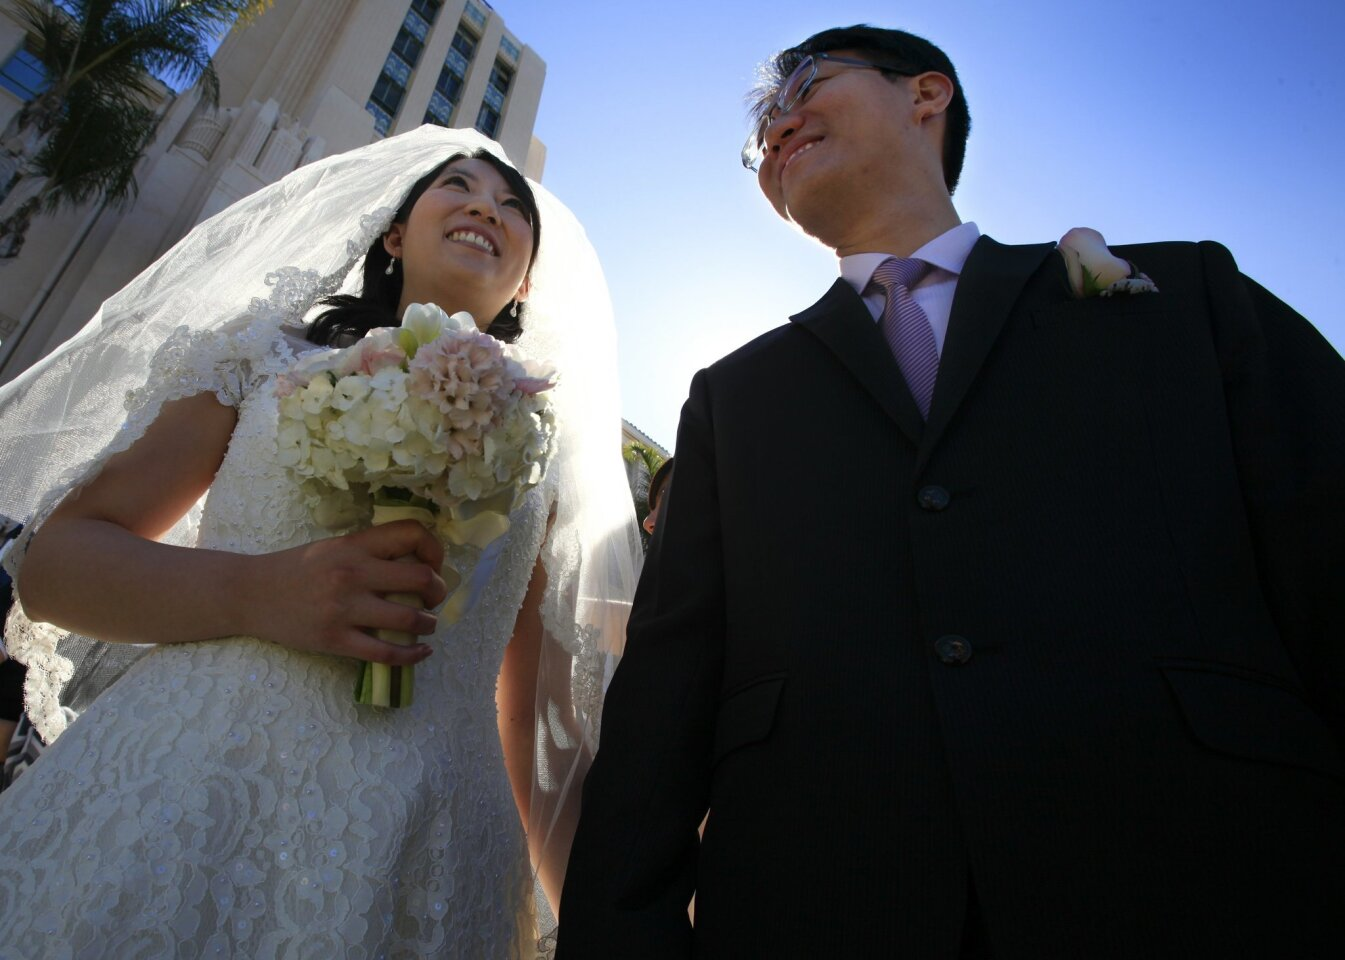 The wedding of Jasmine Chang and Chihming Tsai  was one of the nearly 200 Valentine's Day weddings performed at the San Diego County Administration Center.